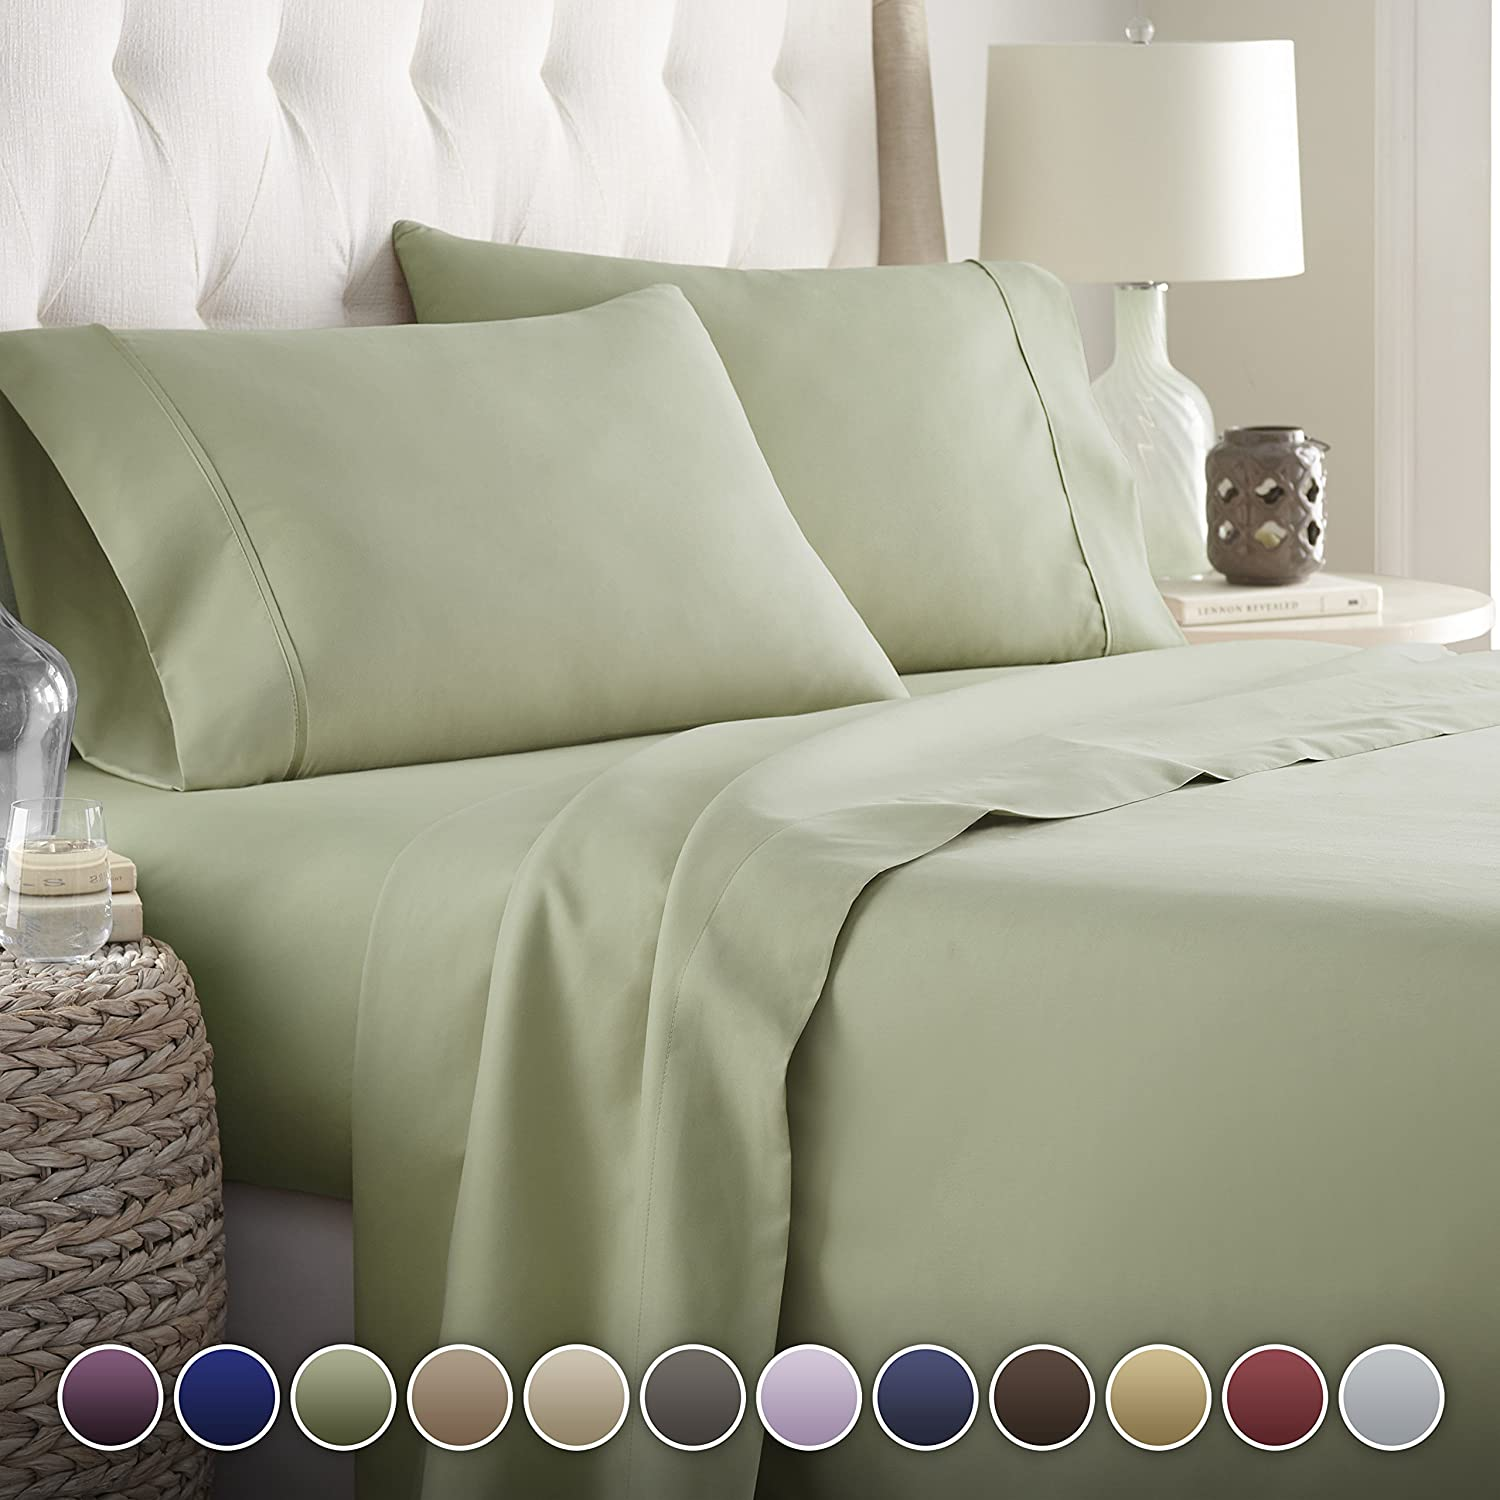 Hotel Luxury Bed Sheets Set-- 1800 Series Platinum Collection-Deep Pocket, Wrinkle & Fade Resistant(King,Sage)